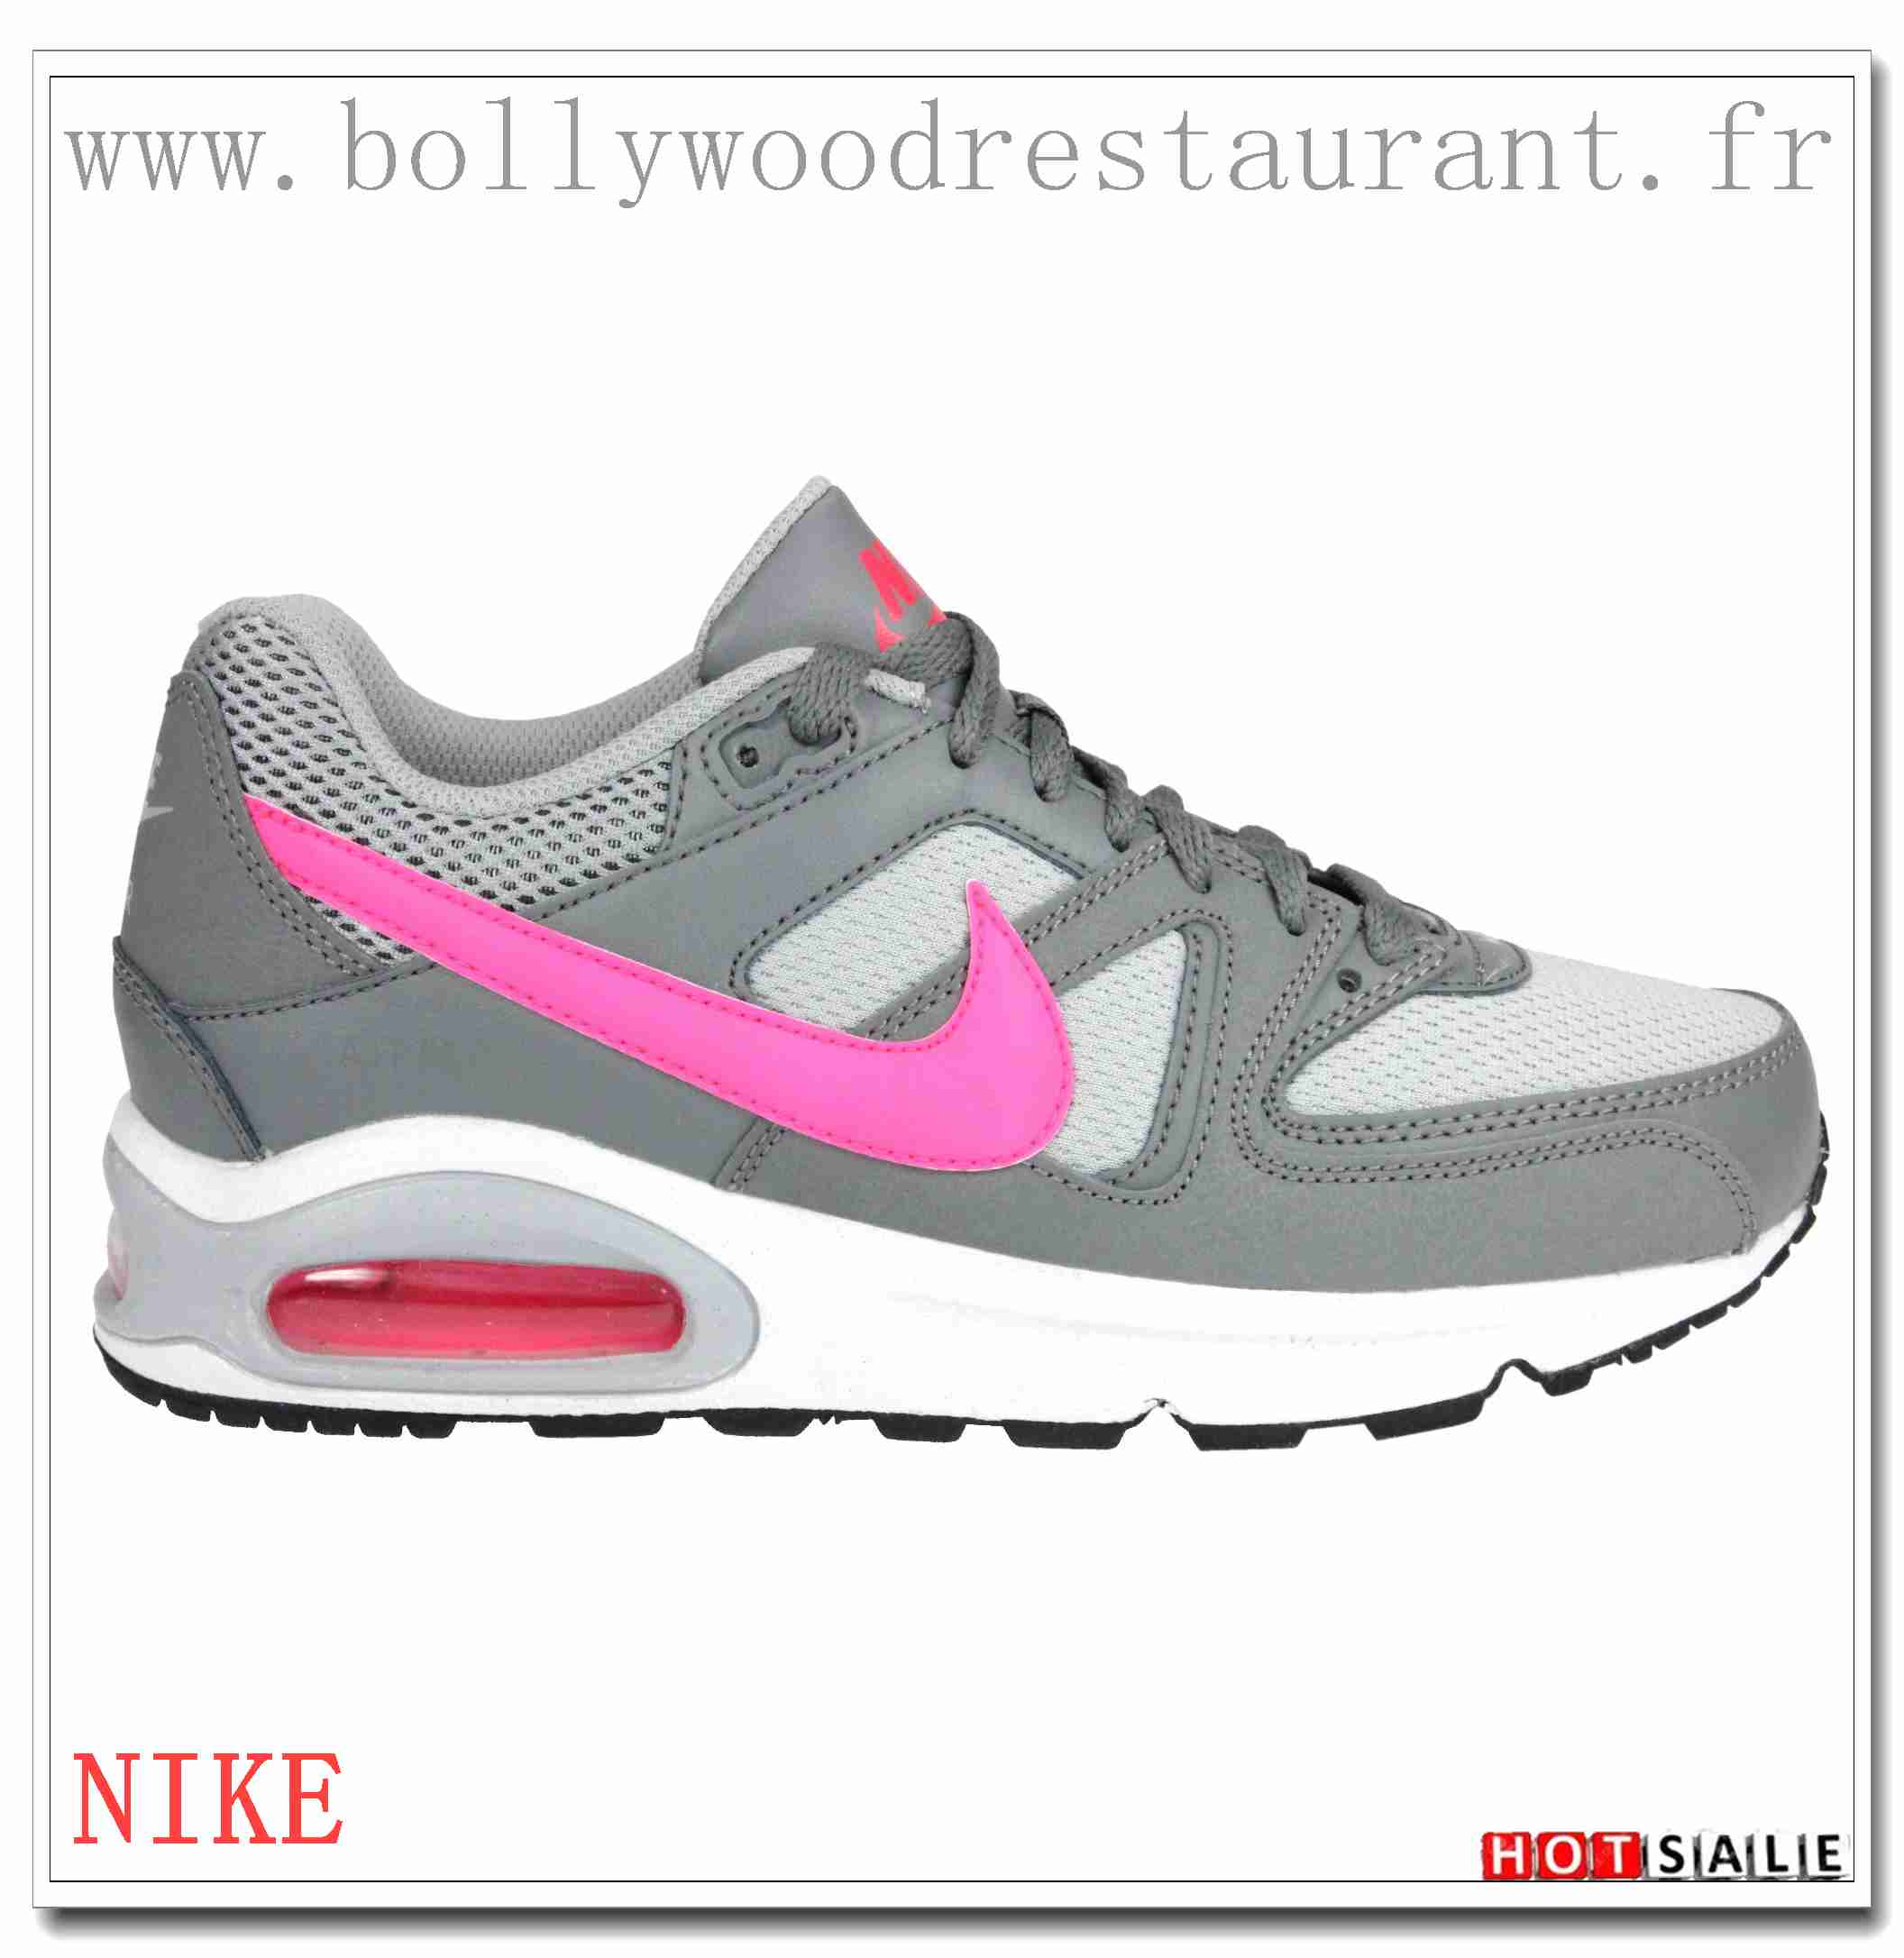 the latest 00328 5070b GN2006 Sauvage 2018 Nouveau style Nike Air Max Command - Femme Chaussures -  Promotions Vente -